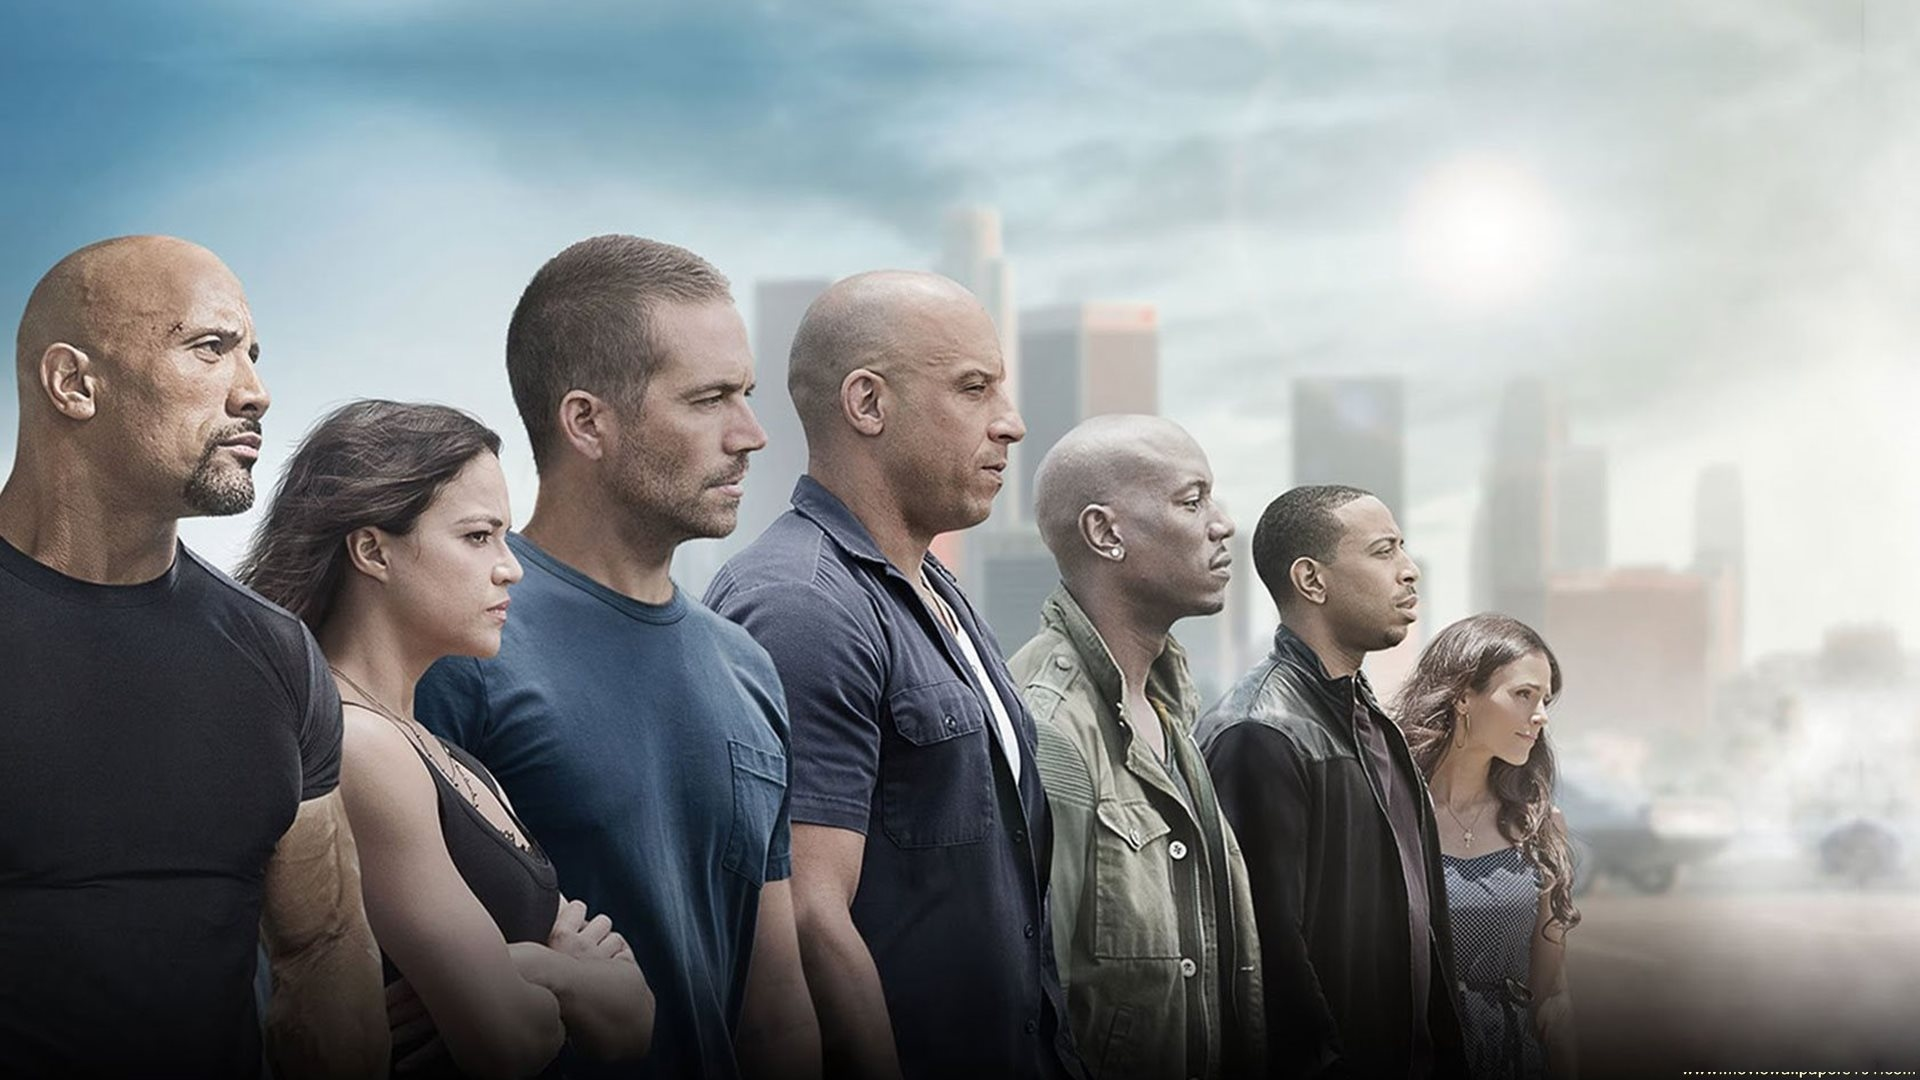 Download Furious 7 2015 Movie Full Cast Poster HD Wallpaper Search 1920x1080